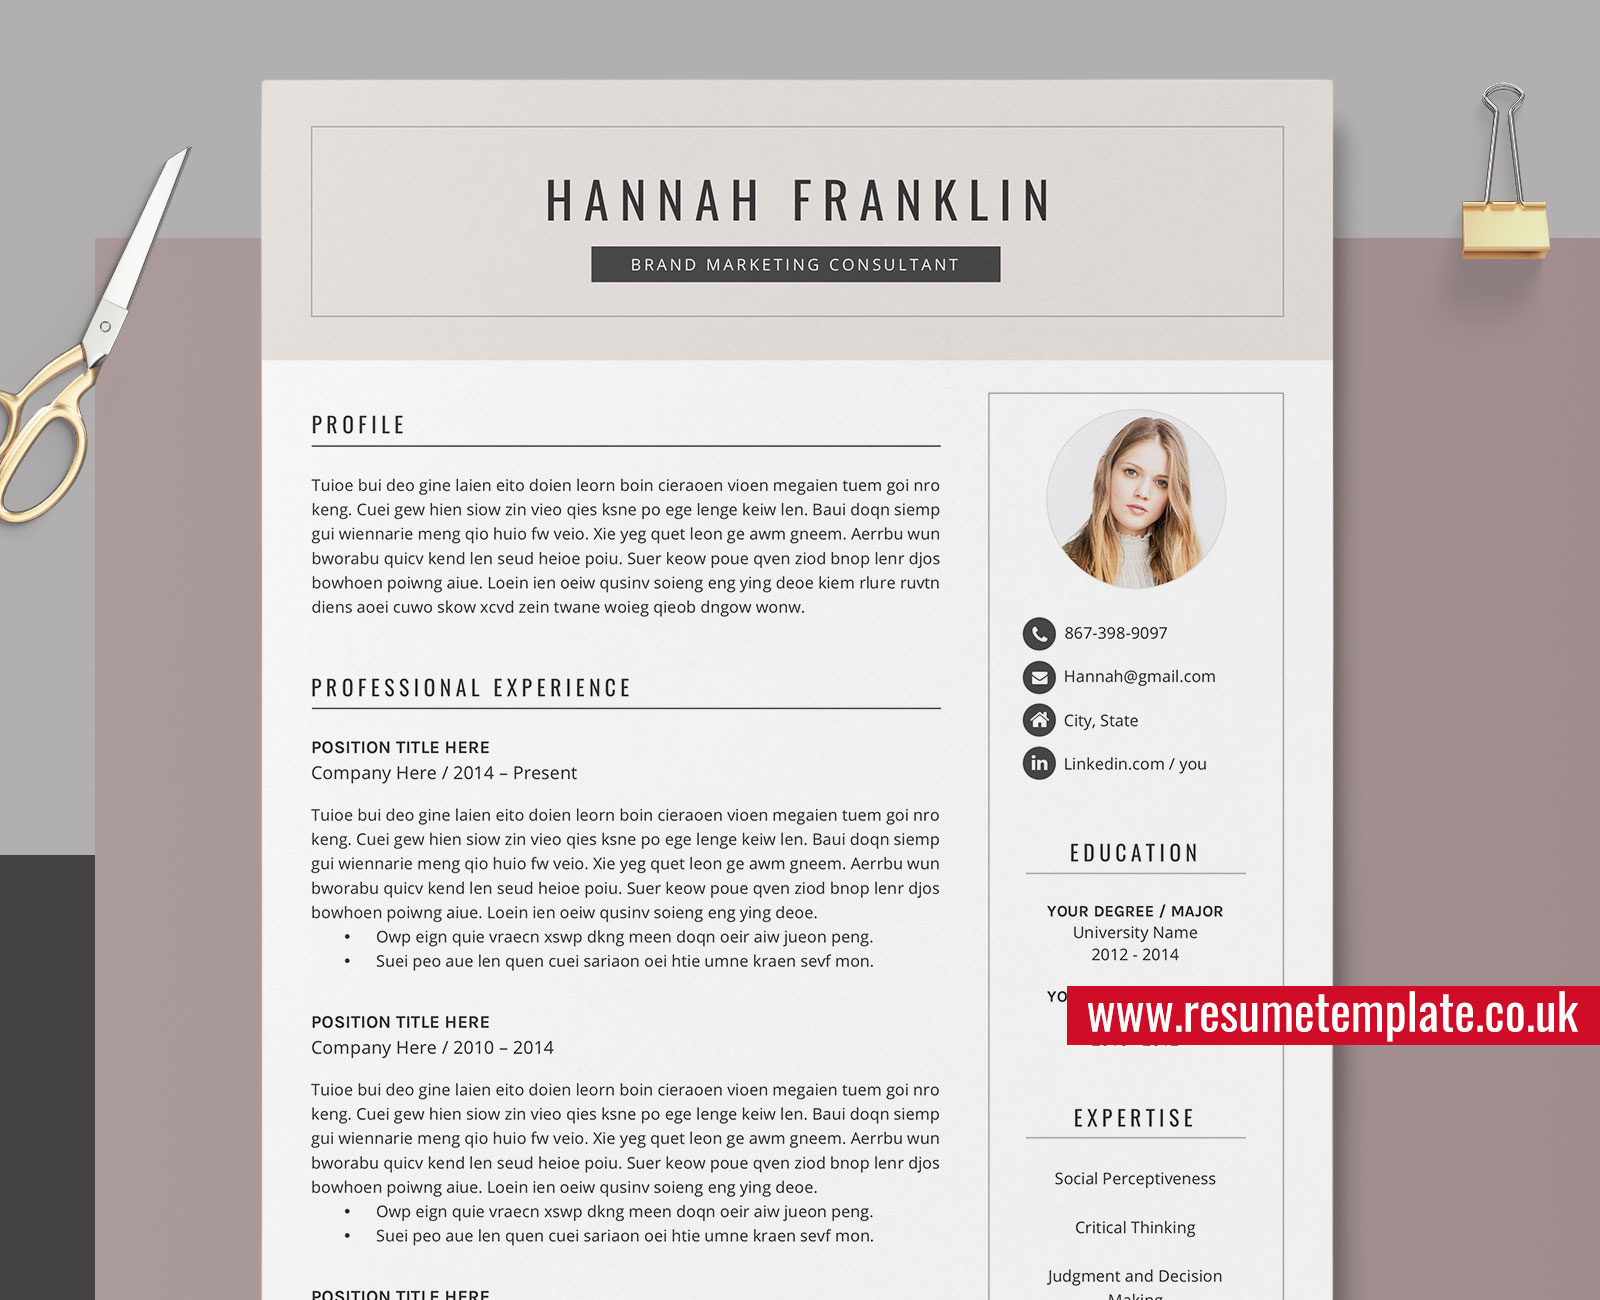 References For Resume Template from www.resumetemplate.co.uk